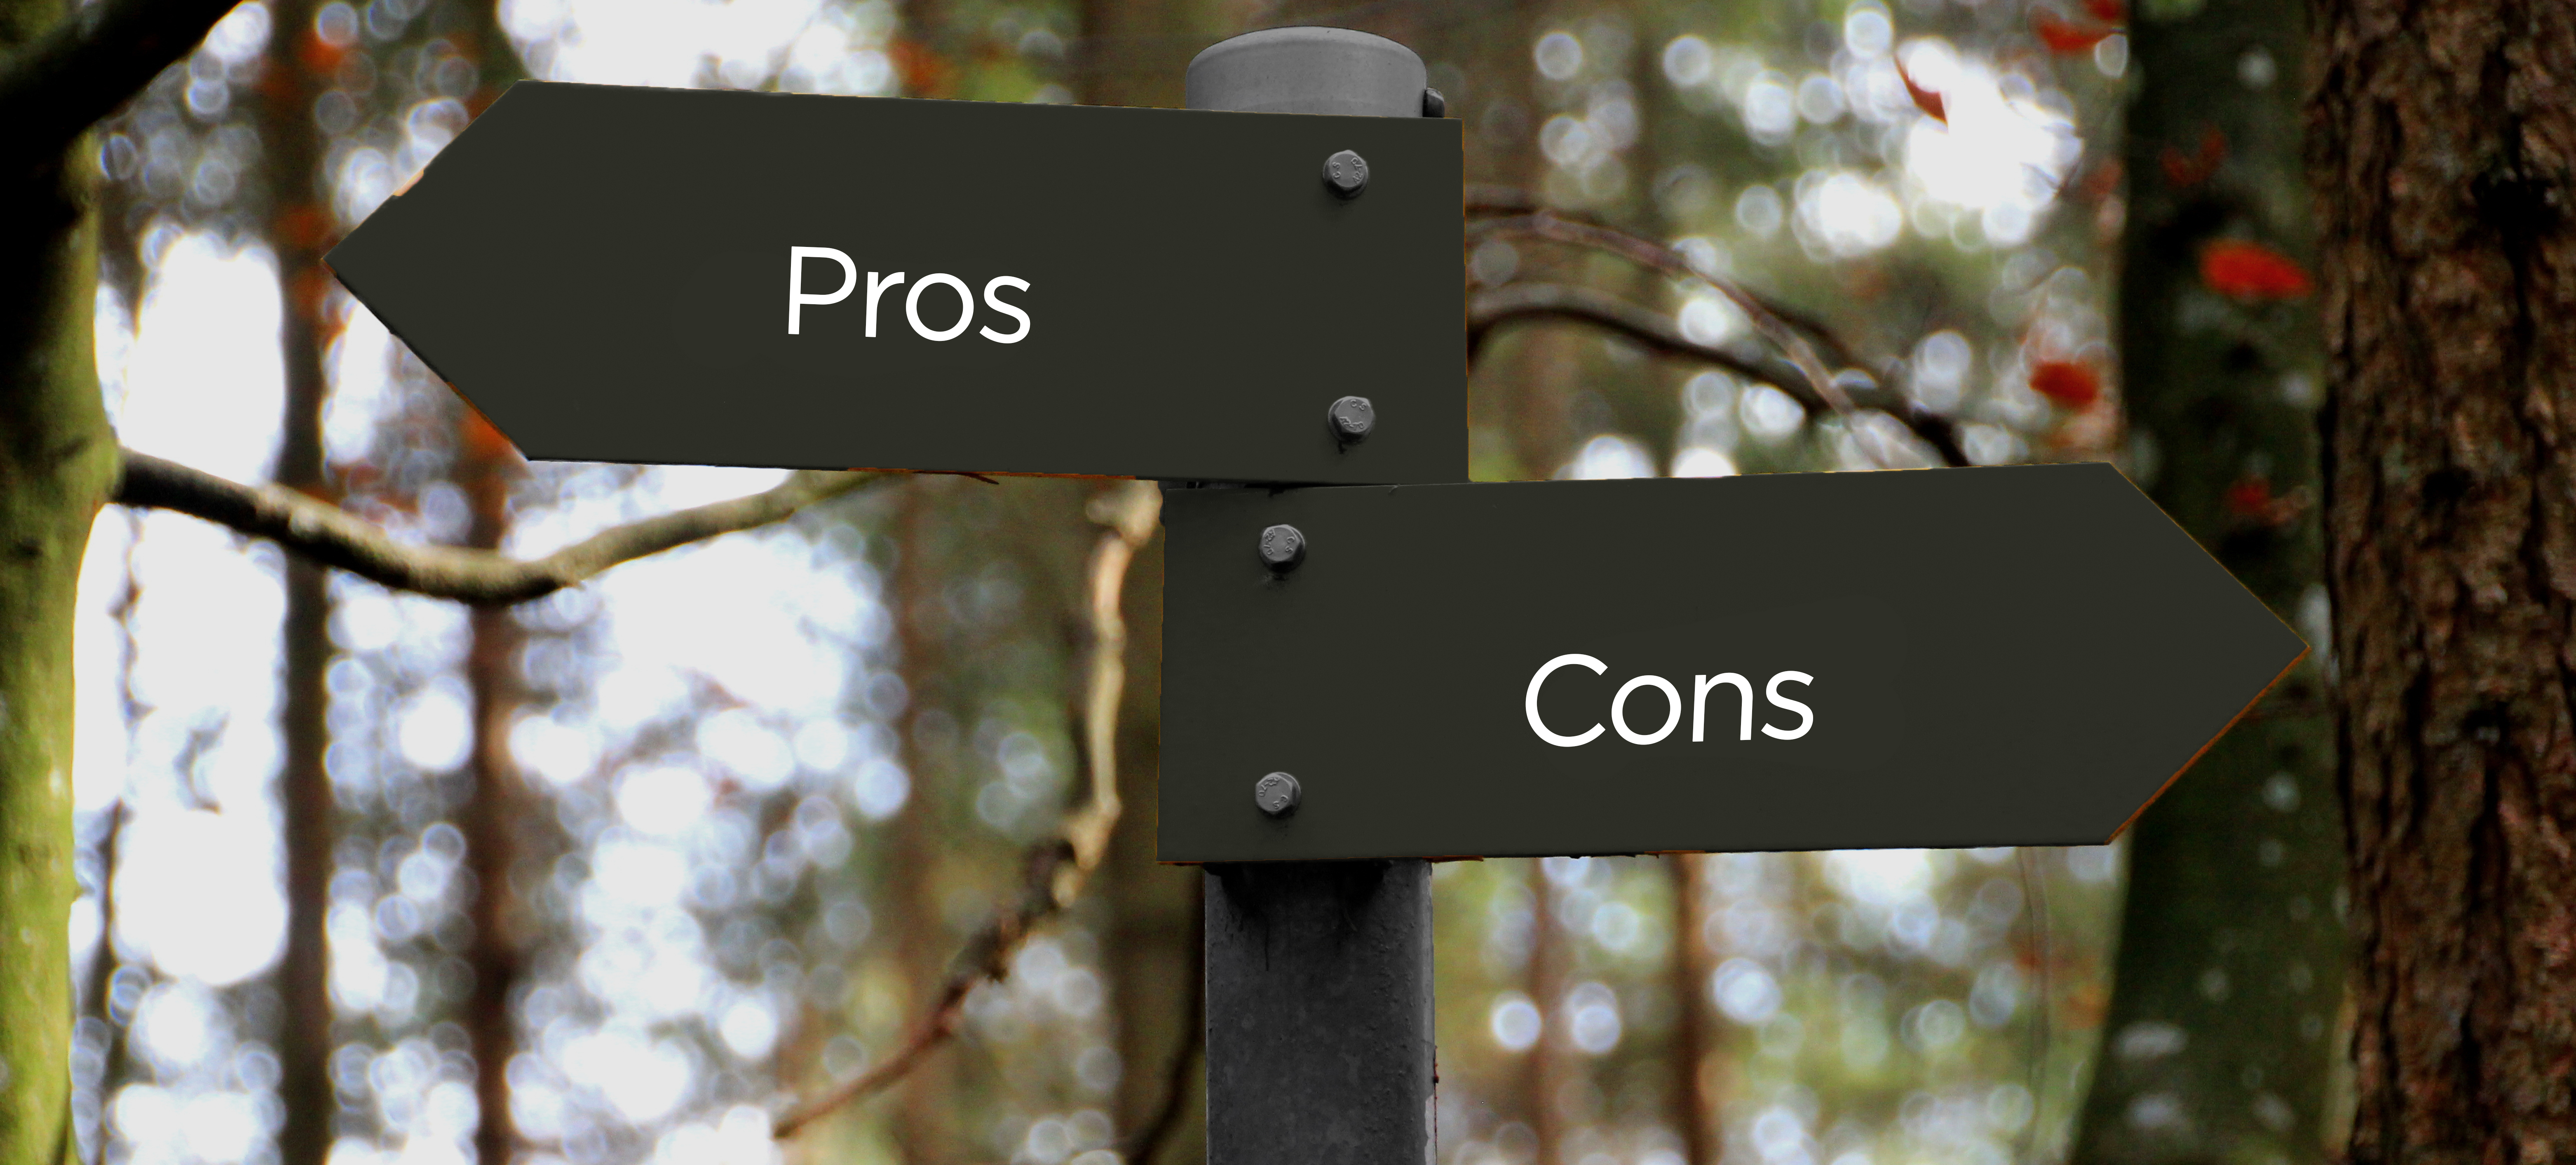 Shared ownership – pros and cons